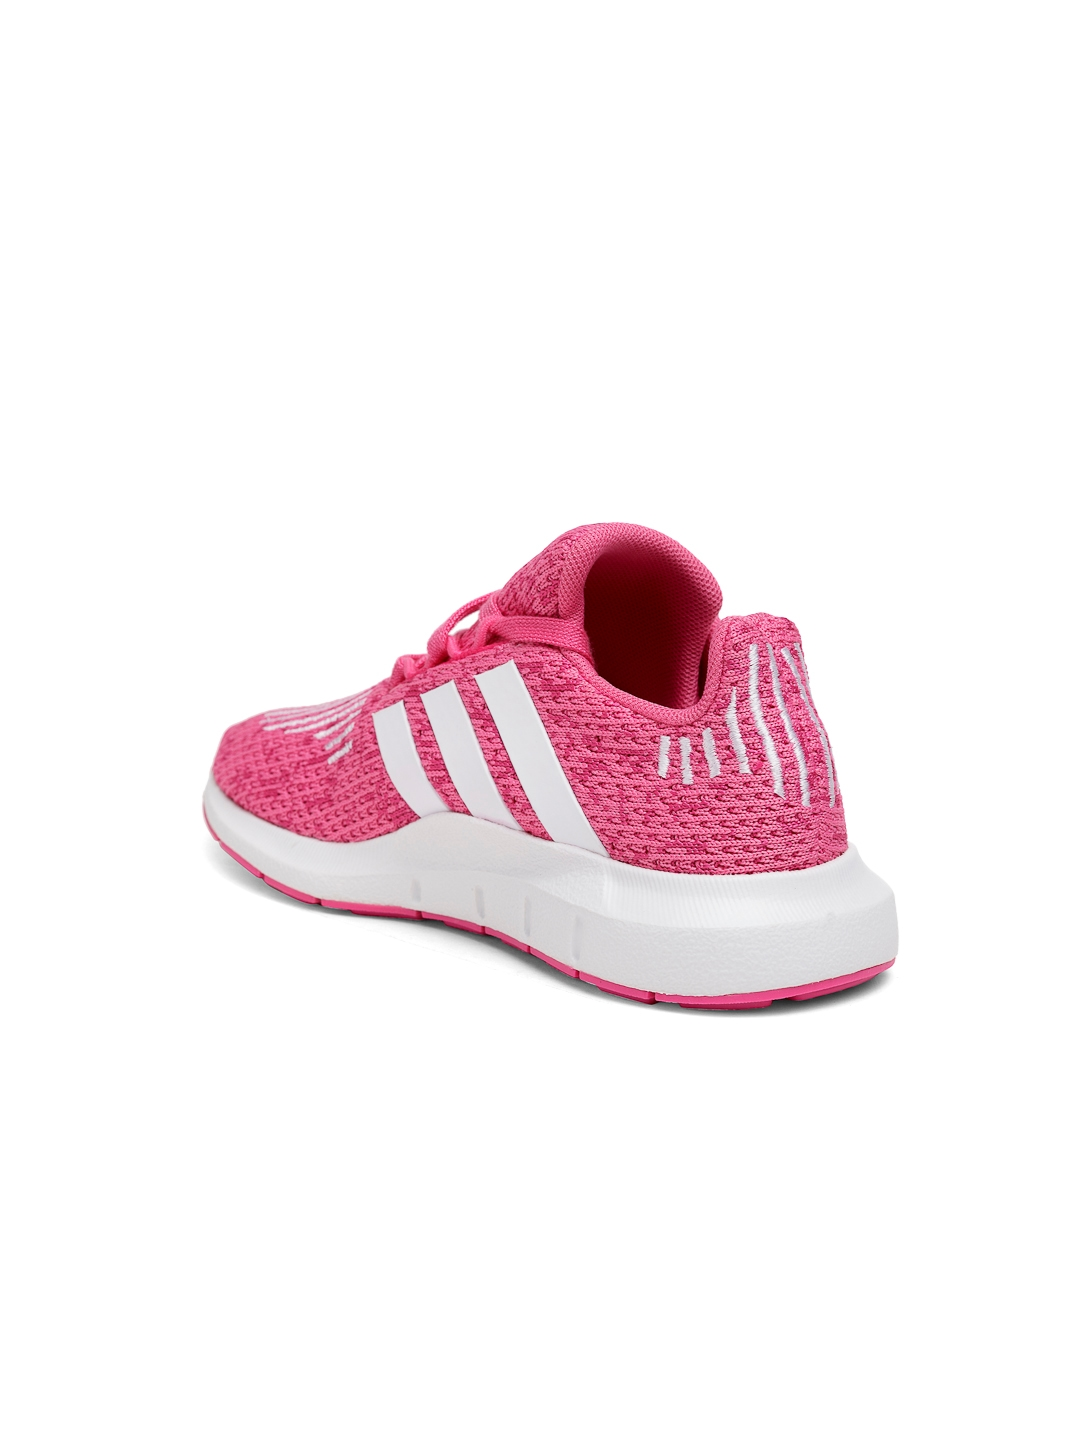 e07a98c789586 Buy ADIDAS Originals Kids Pink Swift Run Running Shoes - Casual ...